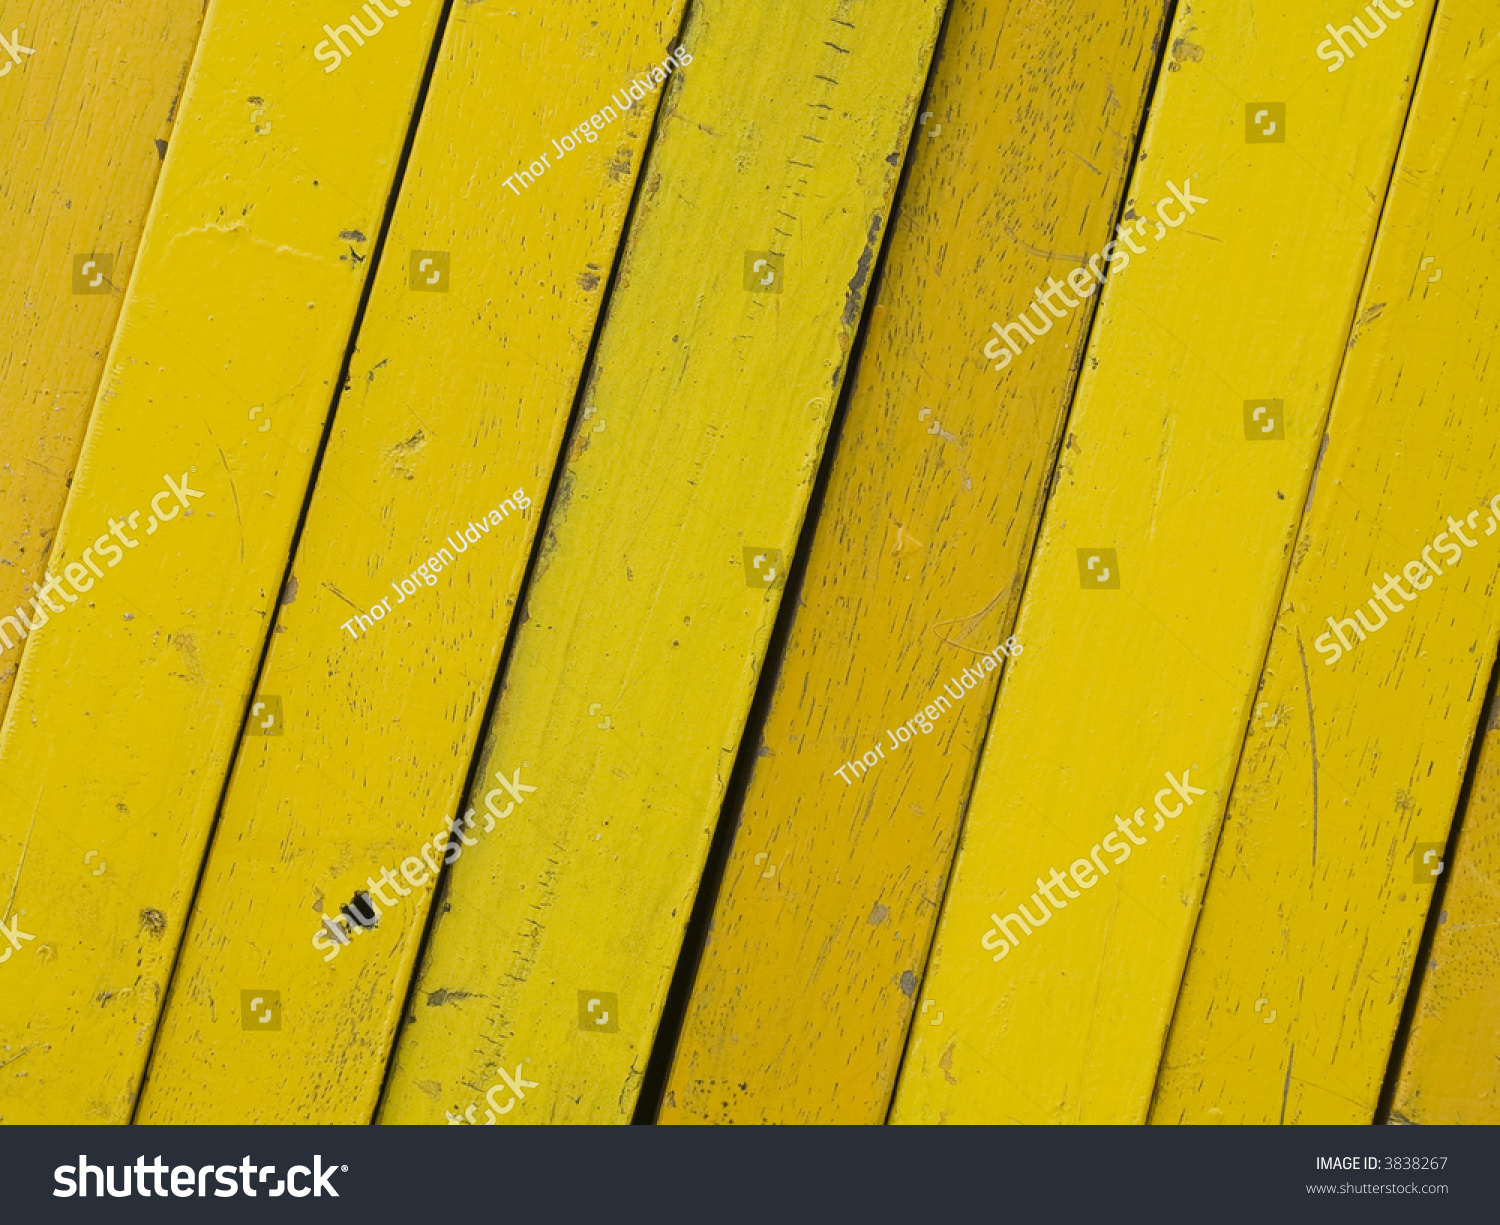 Different Shades Of Yellow diagonal wooden planks, painted in different shades of yellow